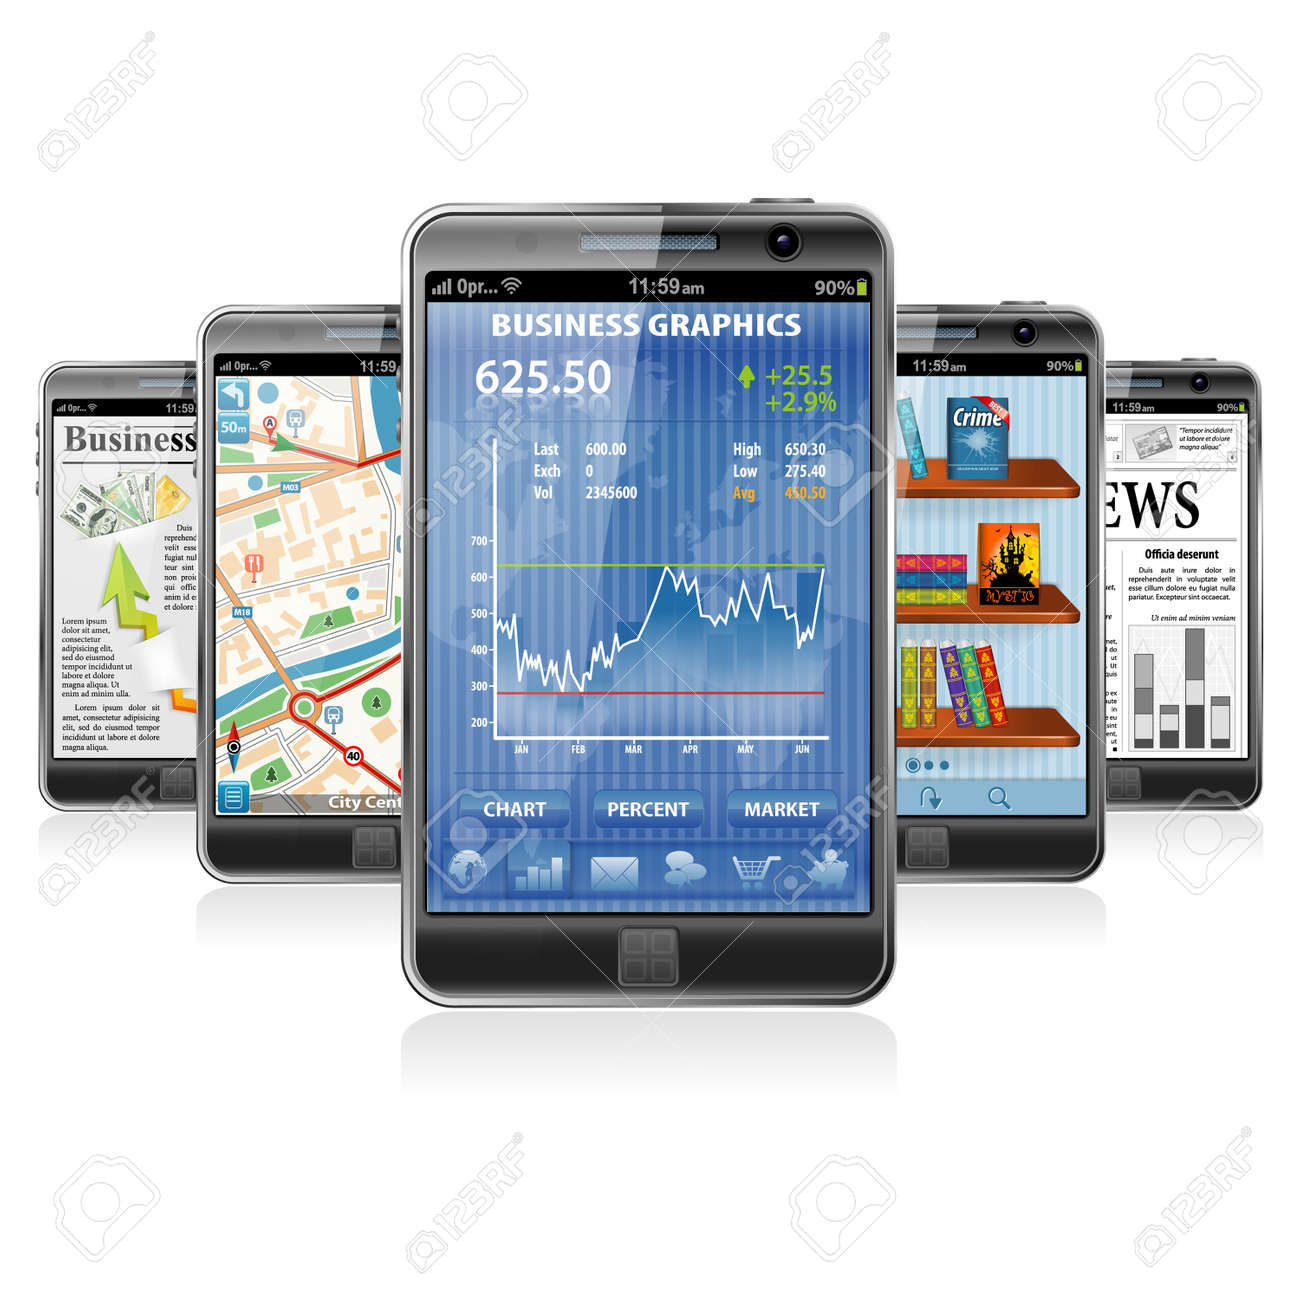 Collect Smartphones with Stock Market Application, Business News, GPS Navigation and Reading Books Application Stock Vector - 15163221